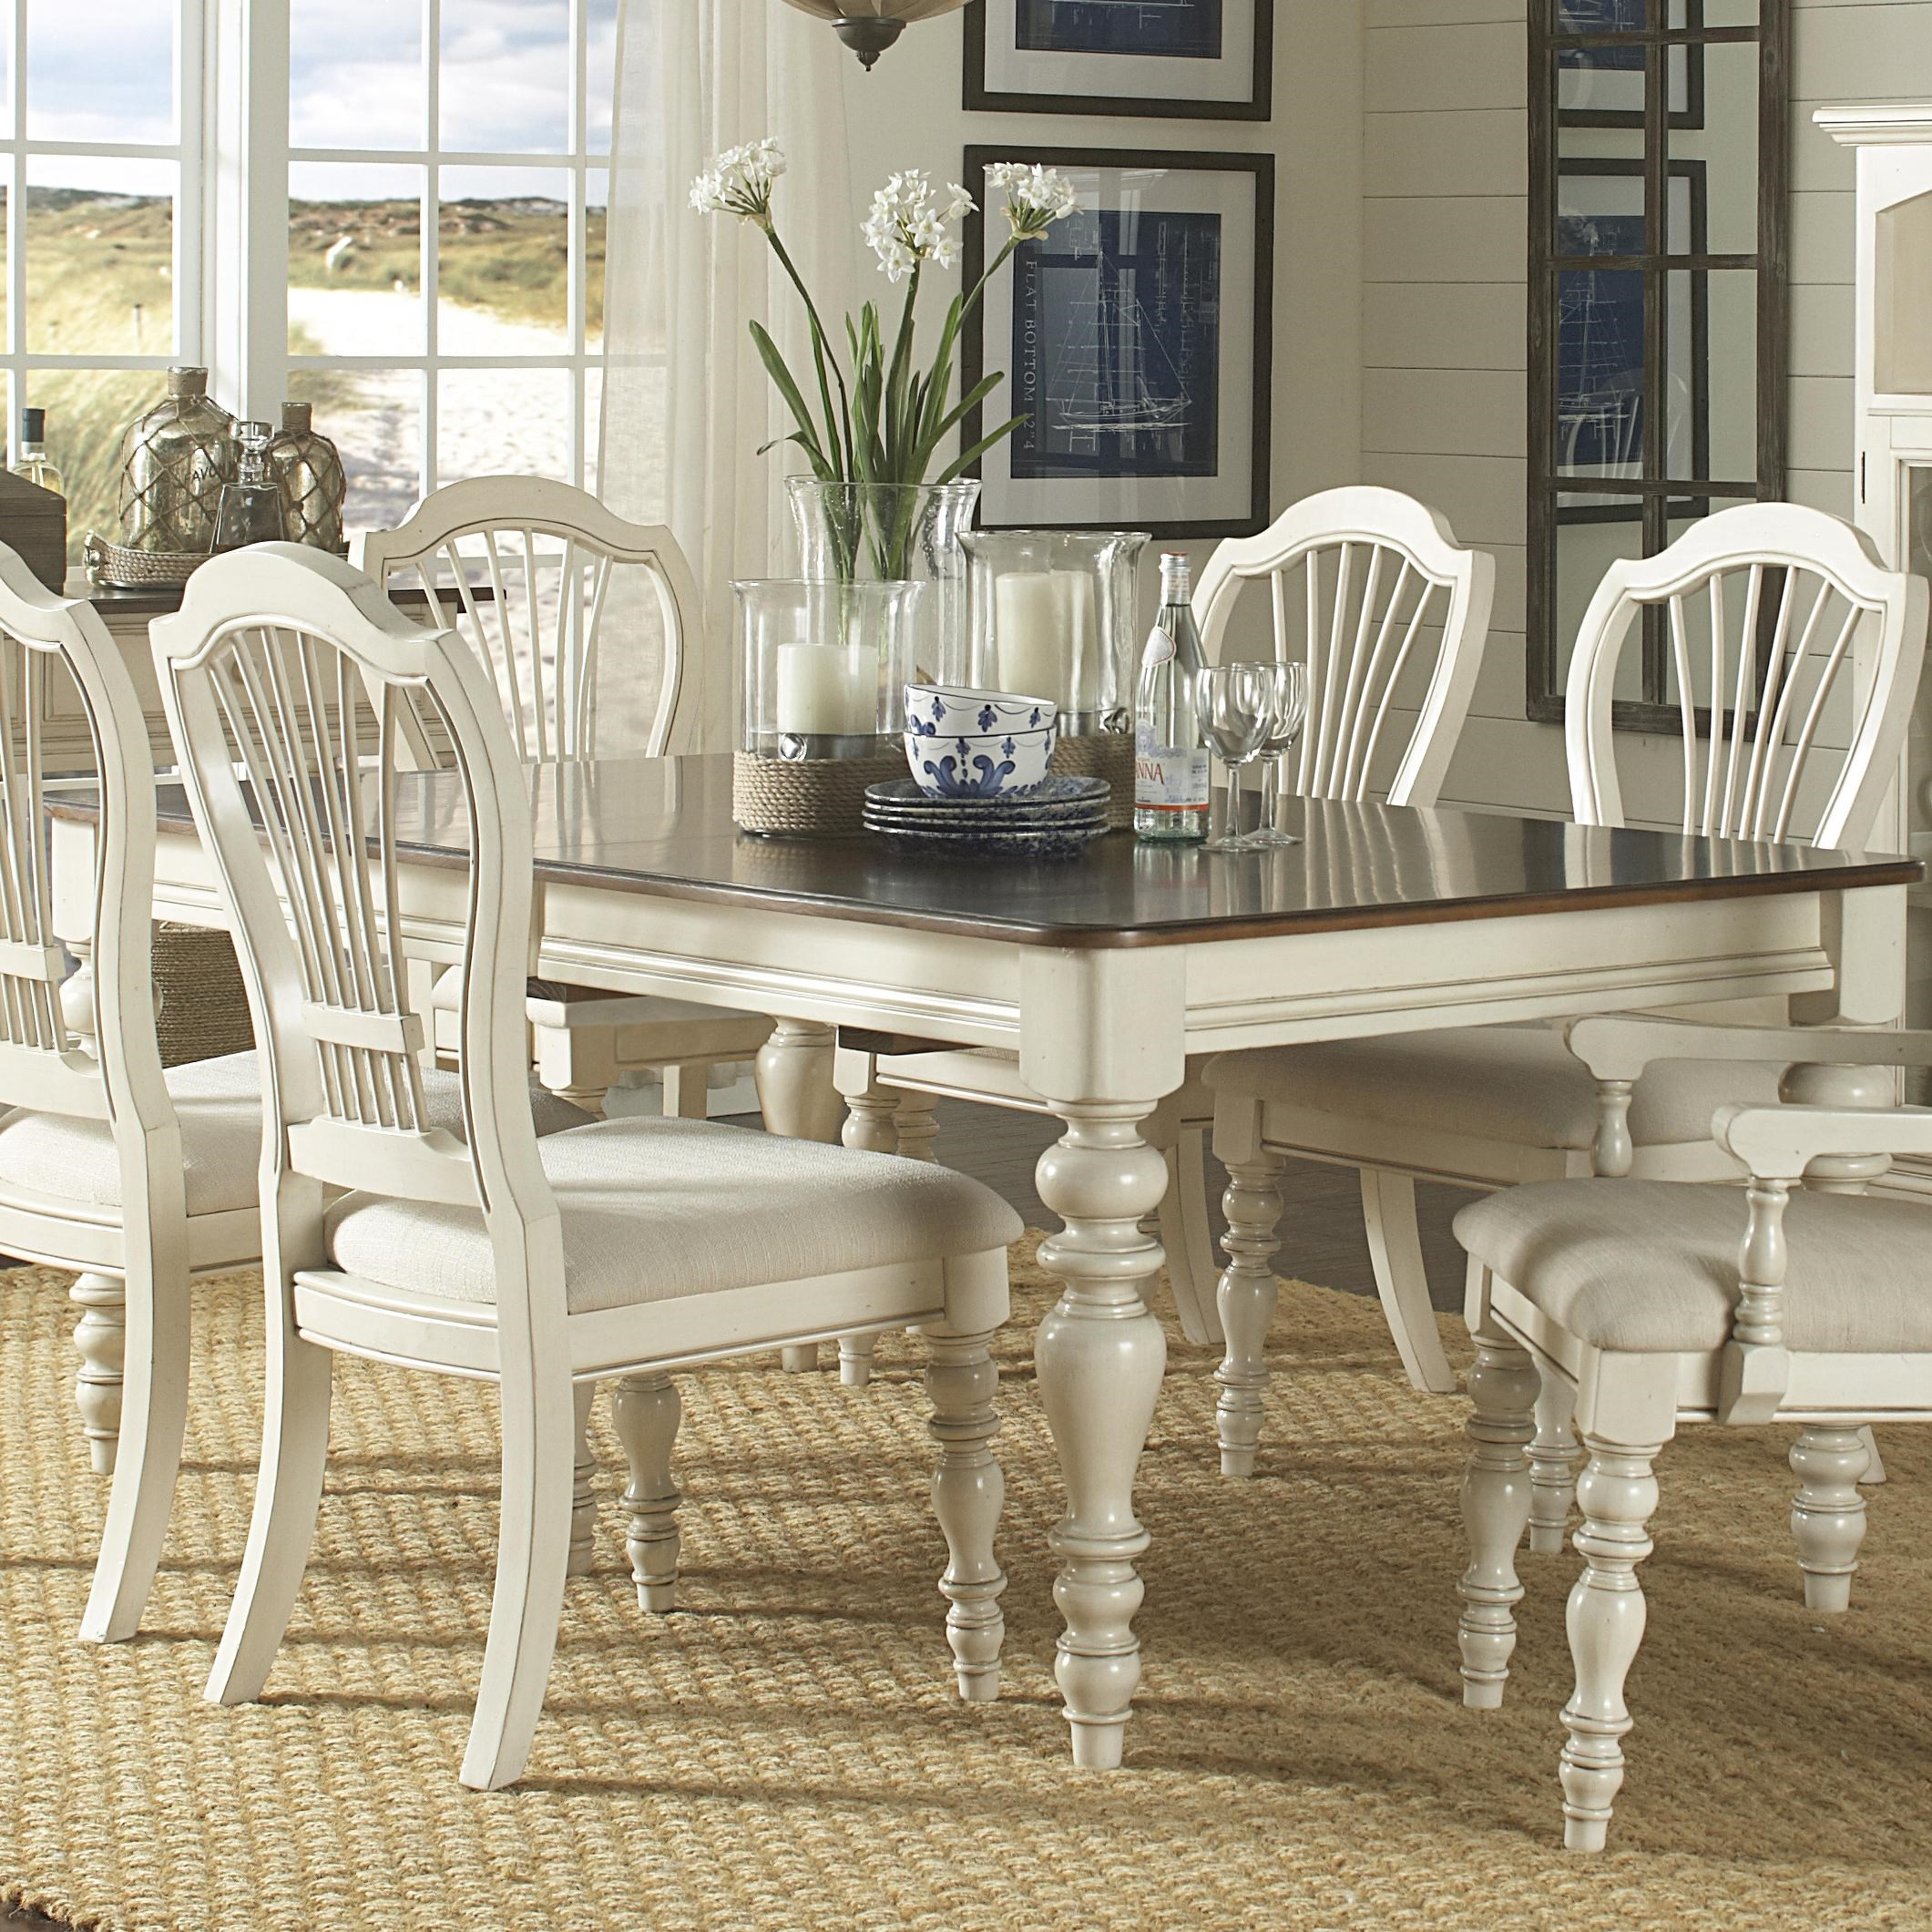 Dining table Wall Mounted Hillsdale Pine Island Dining Table With Turned Legs Boulevard Home Furnishings Dining Tables Boulevard Home Furnishings Hillsdale Pine Island Dining Table With Turned Legs Boulevard Home